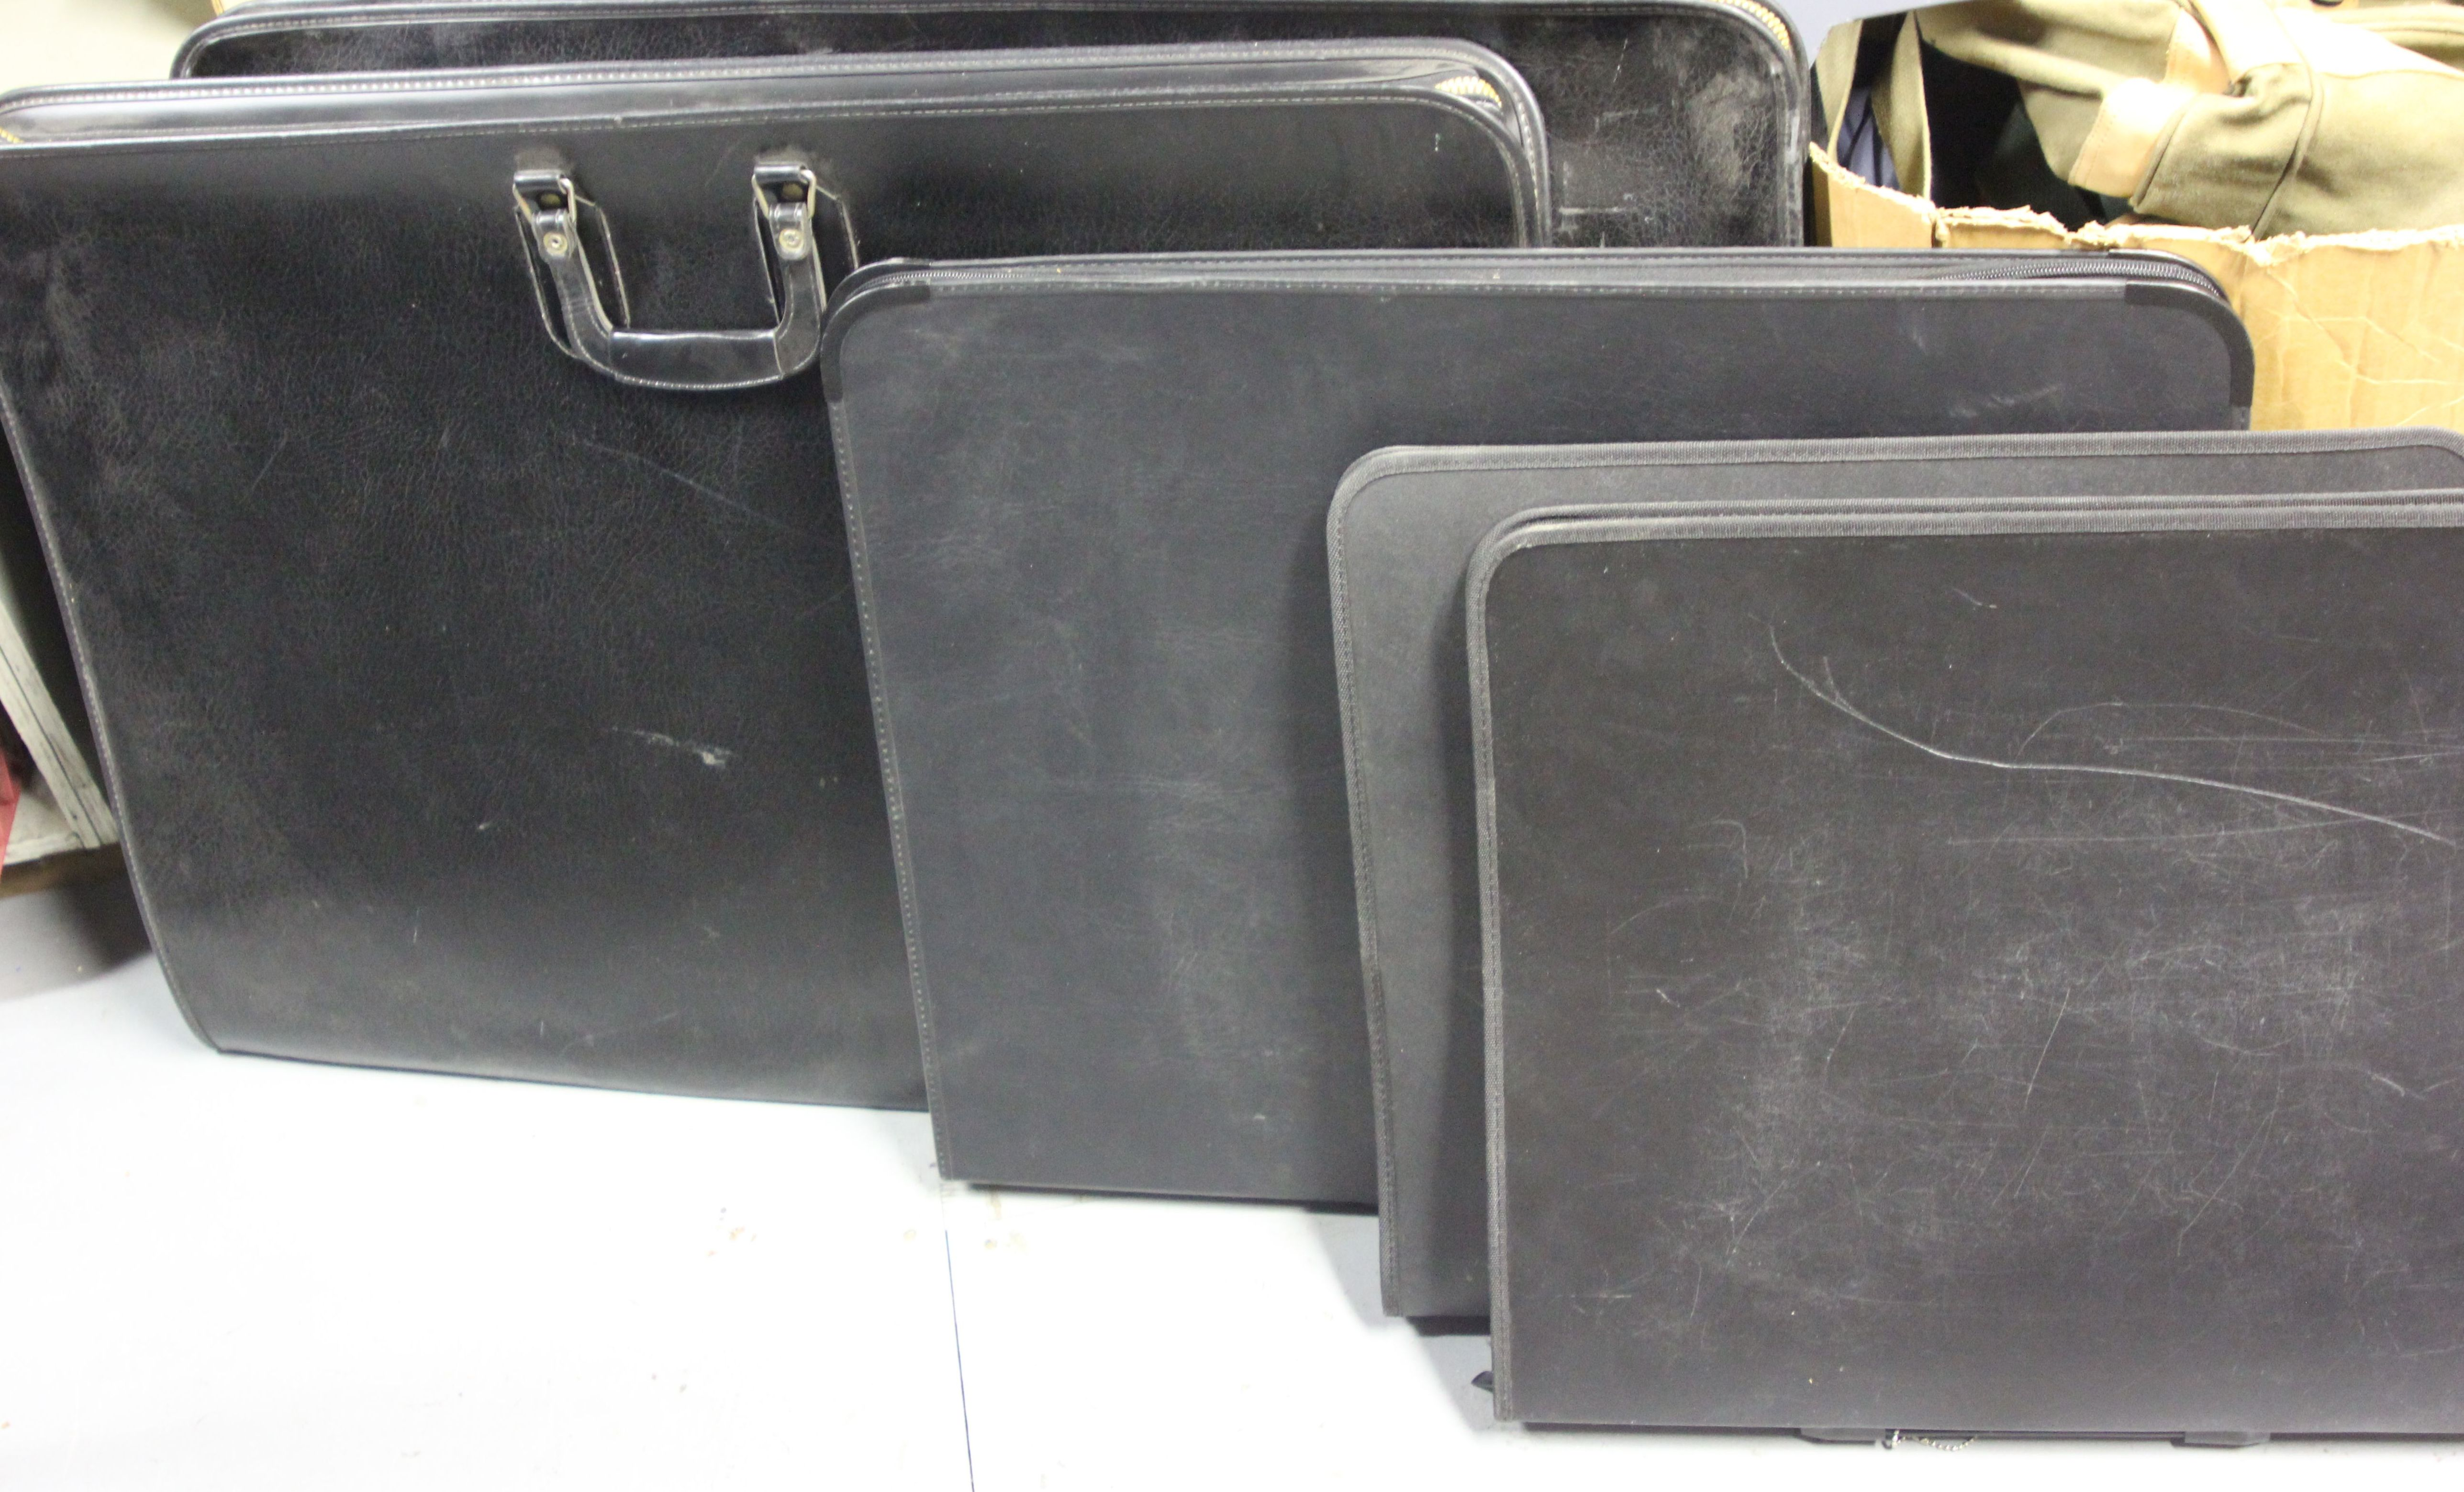 Black Flat Bags for Carrying Art